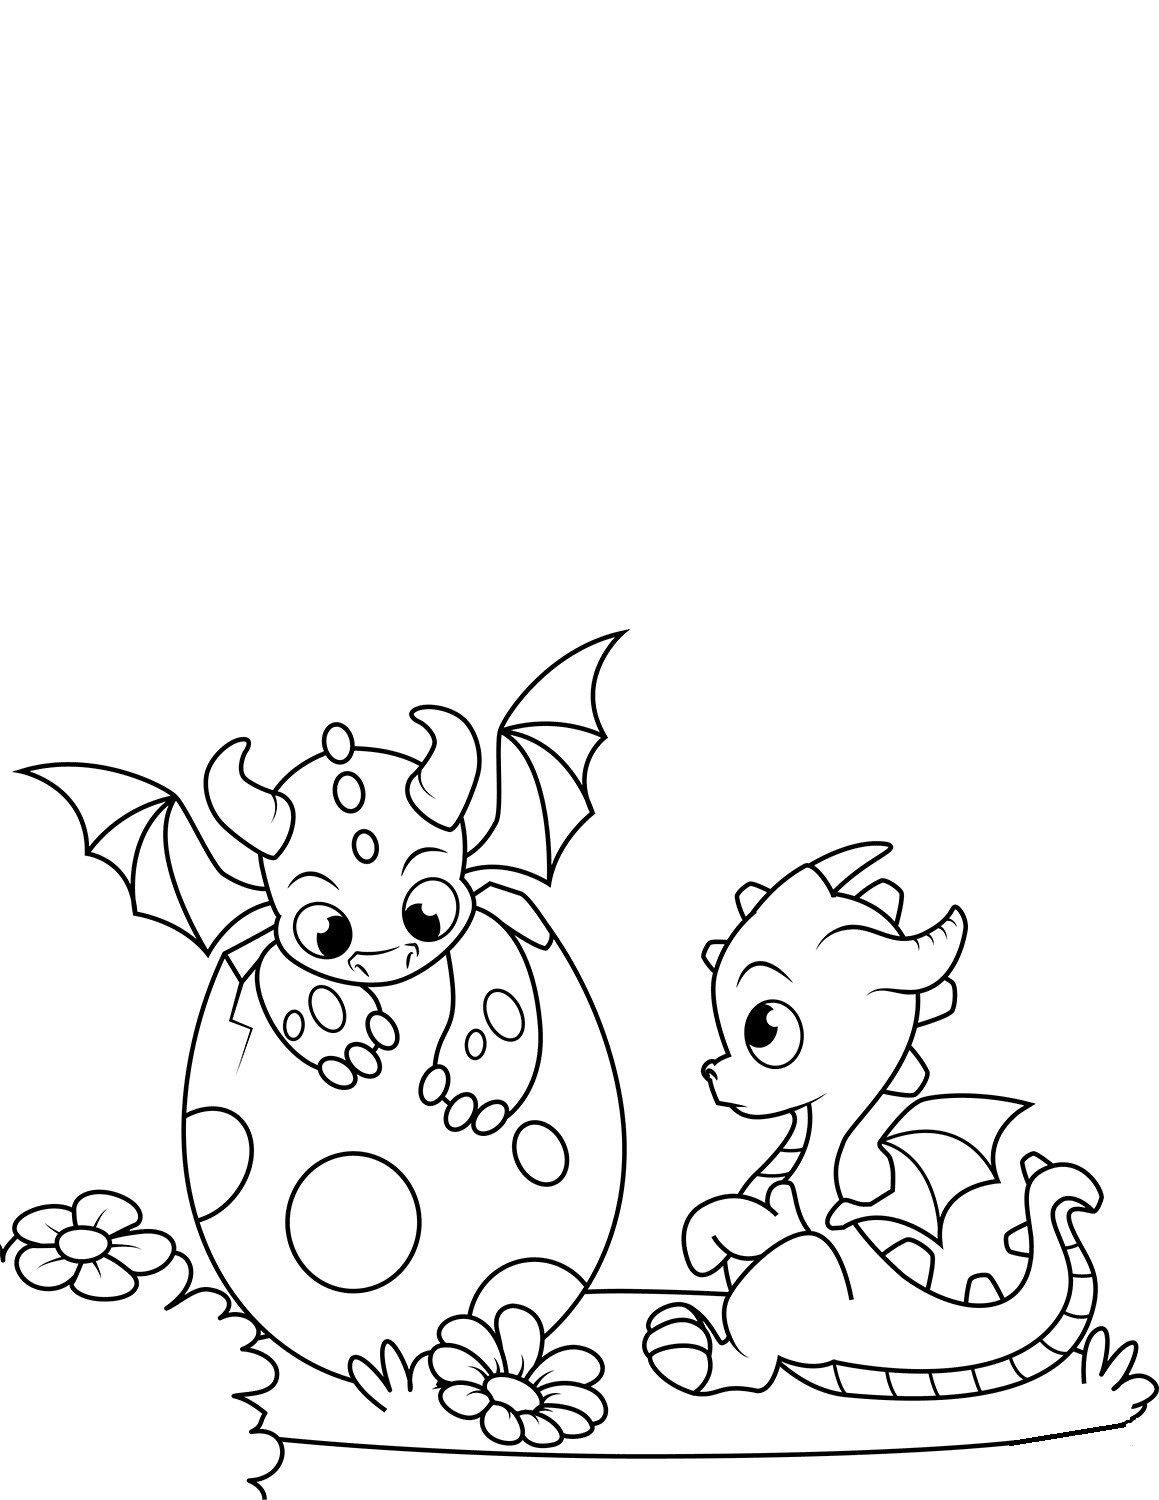 Cute Baby Dragon Coloring Pages For Children Printable Shelter Bunny Coloring Pages Cartoon Coloring Pages Dragon Coloring Page